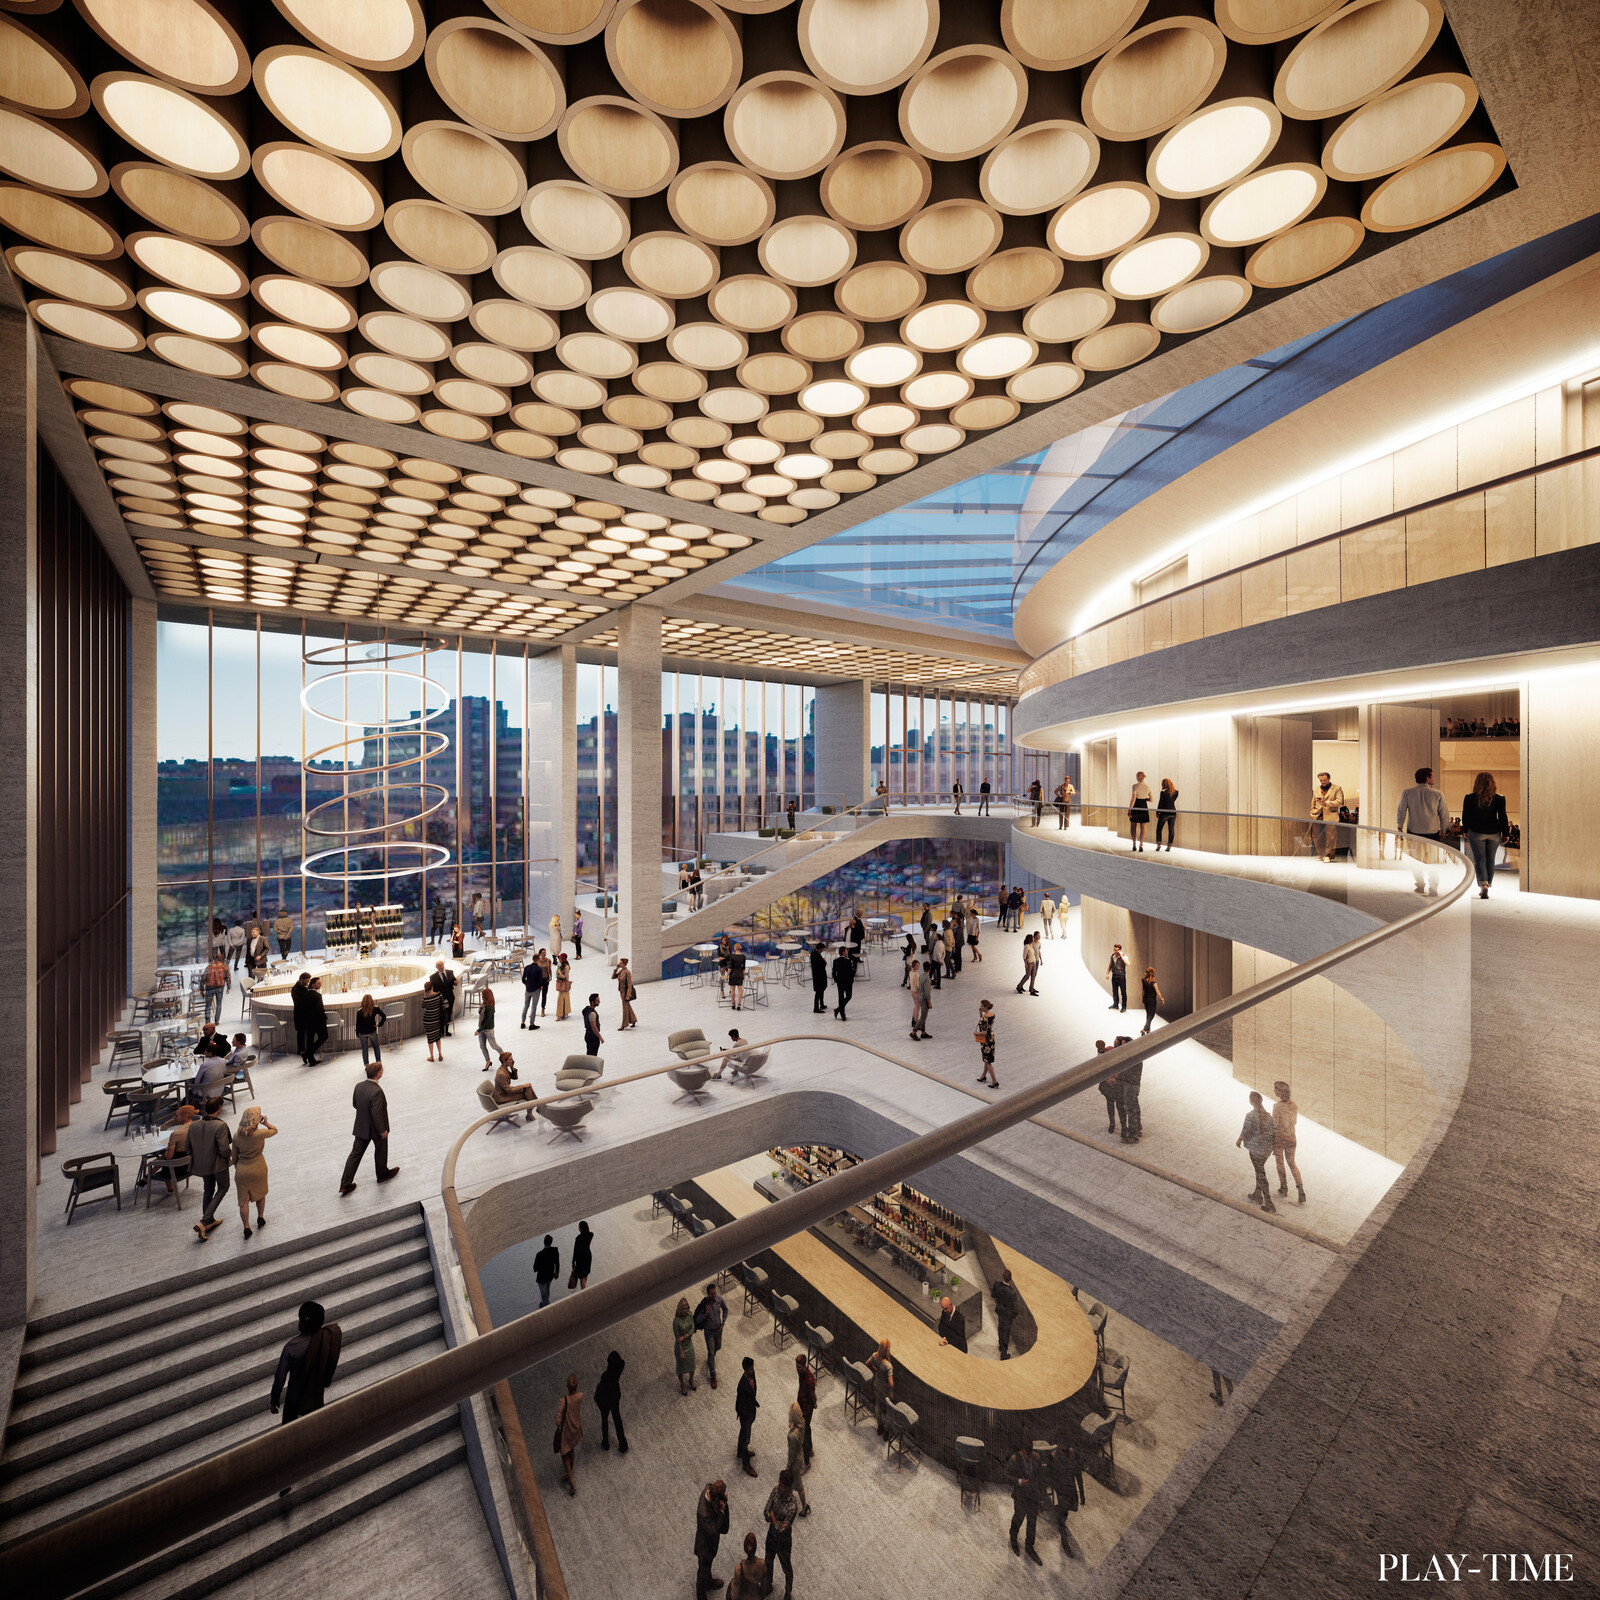 New Istropolis in Bratislava by KCAP + CityFoerster. Images by Play-time